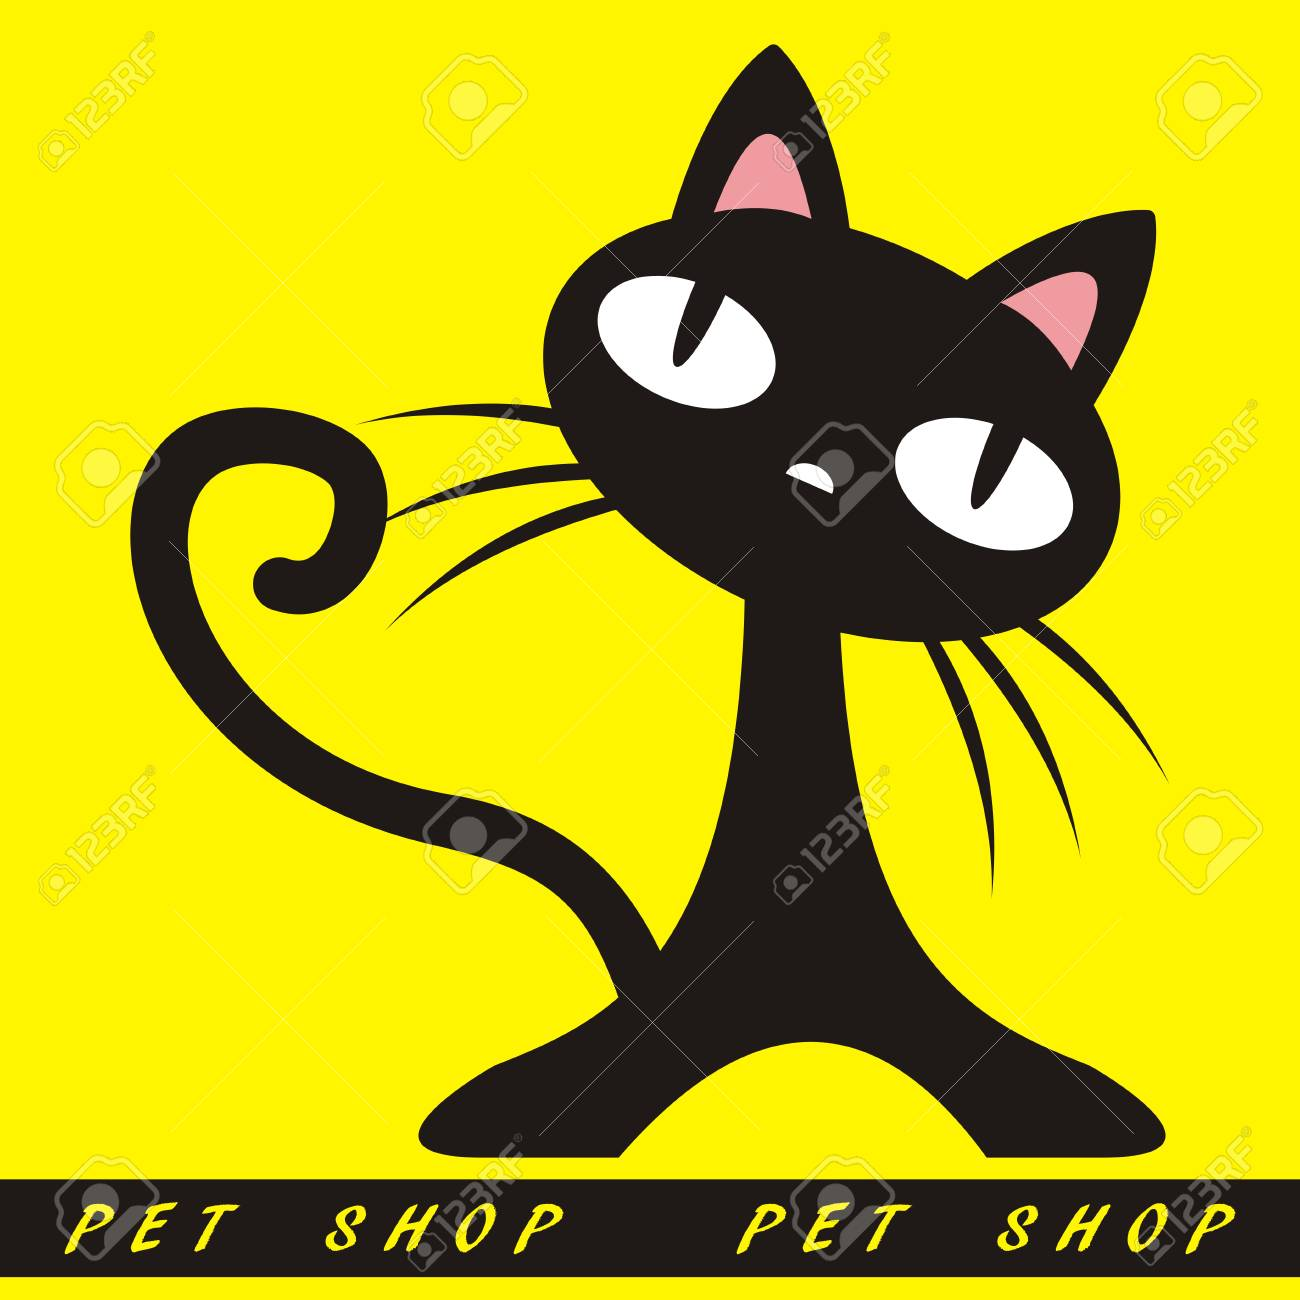 Black Cat On Yellow Background Funny Vector Illustration Decoration Royalty Free Cliparts Vectors And Stock Illustration Image 92699153